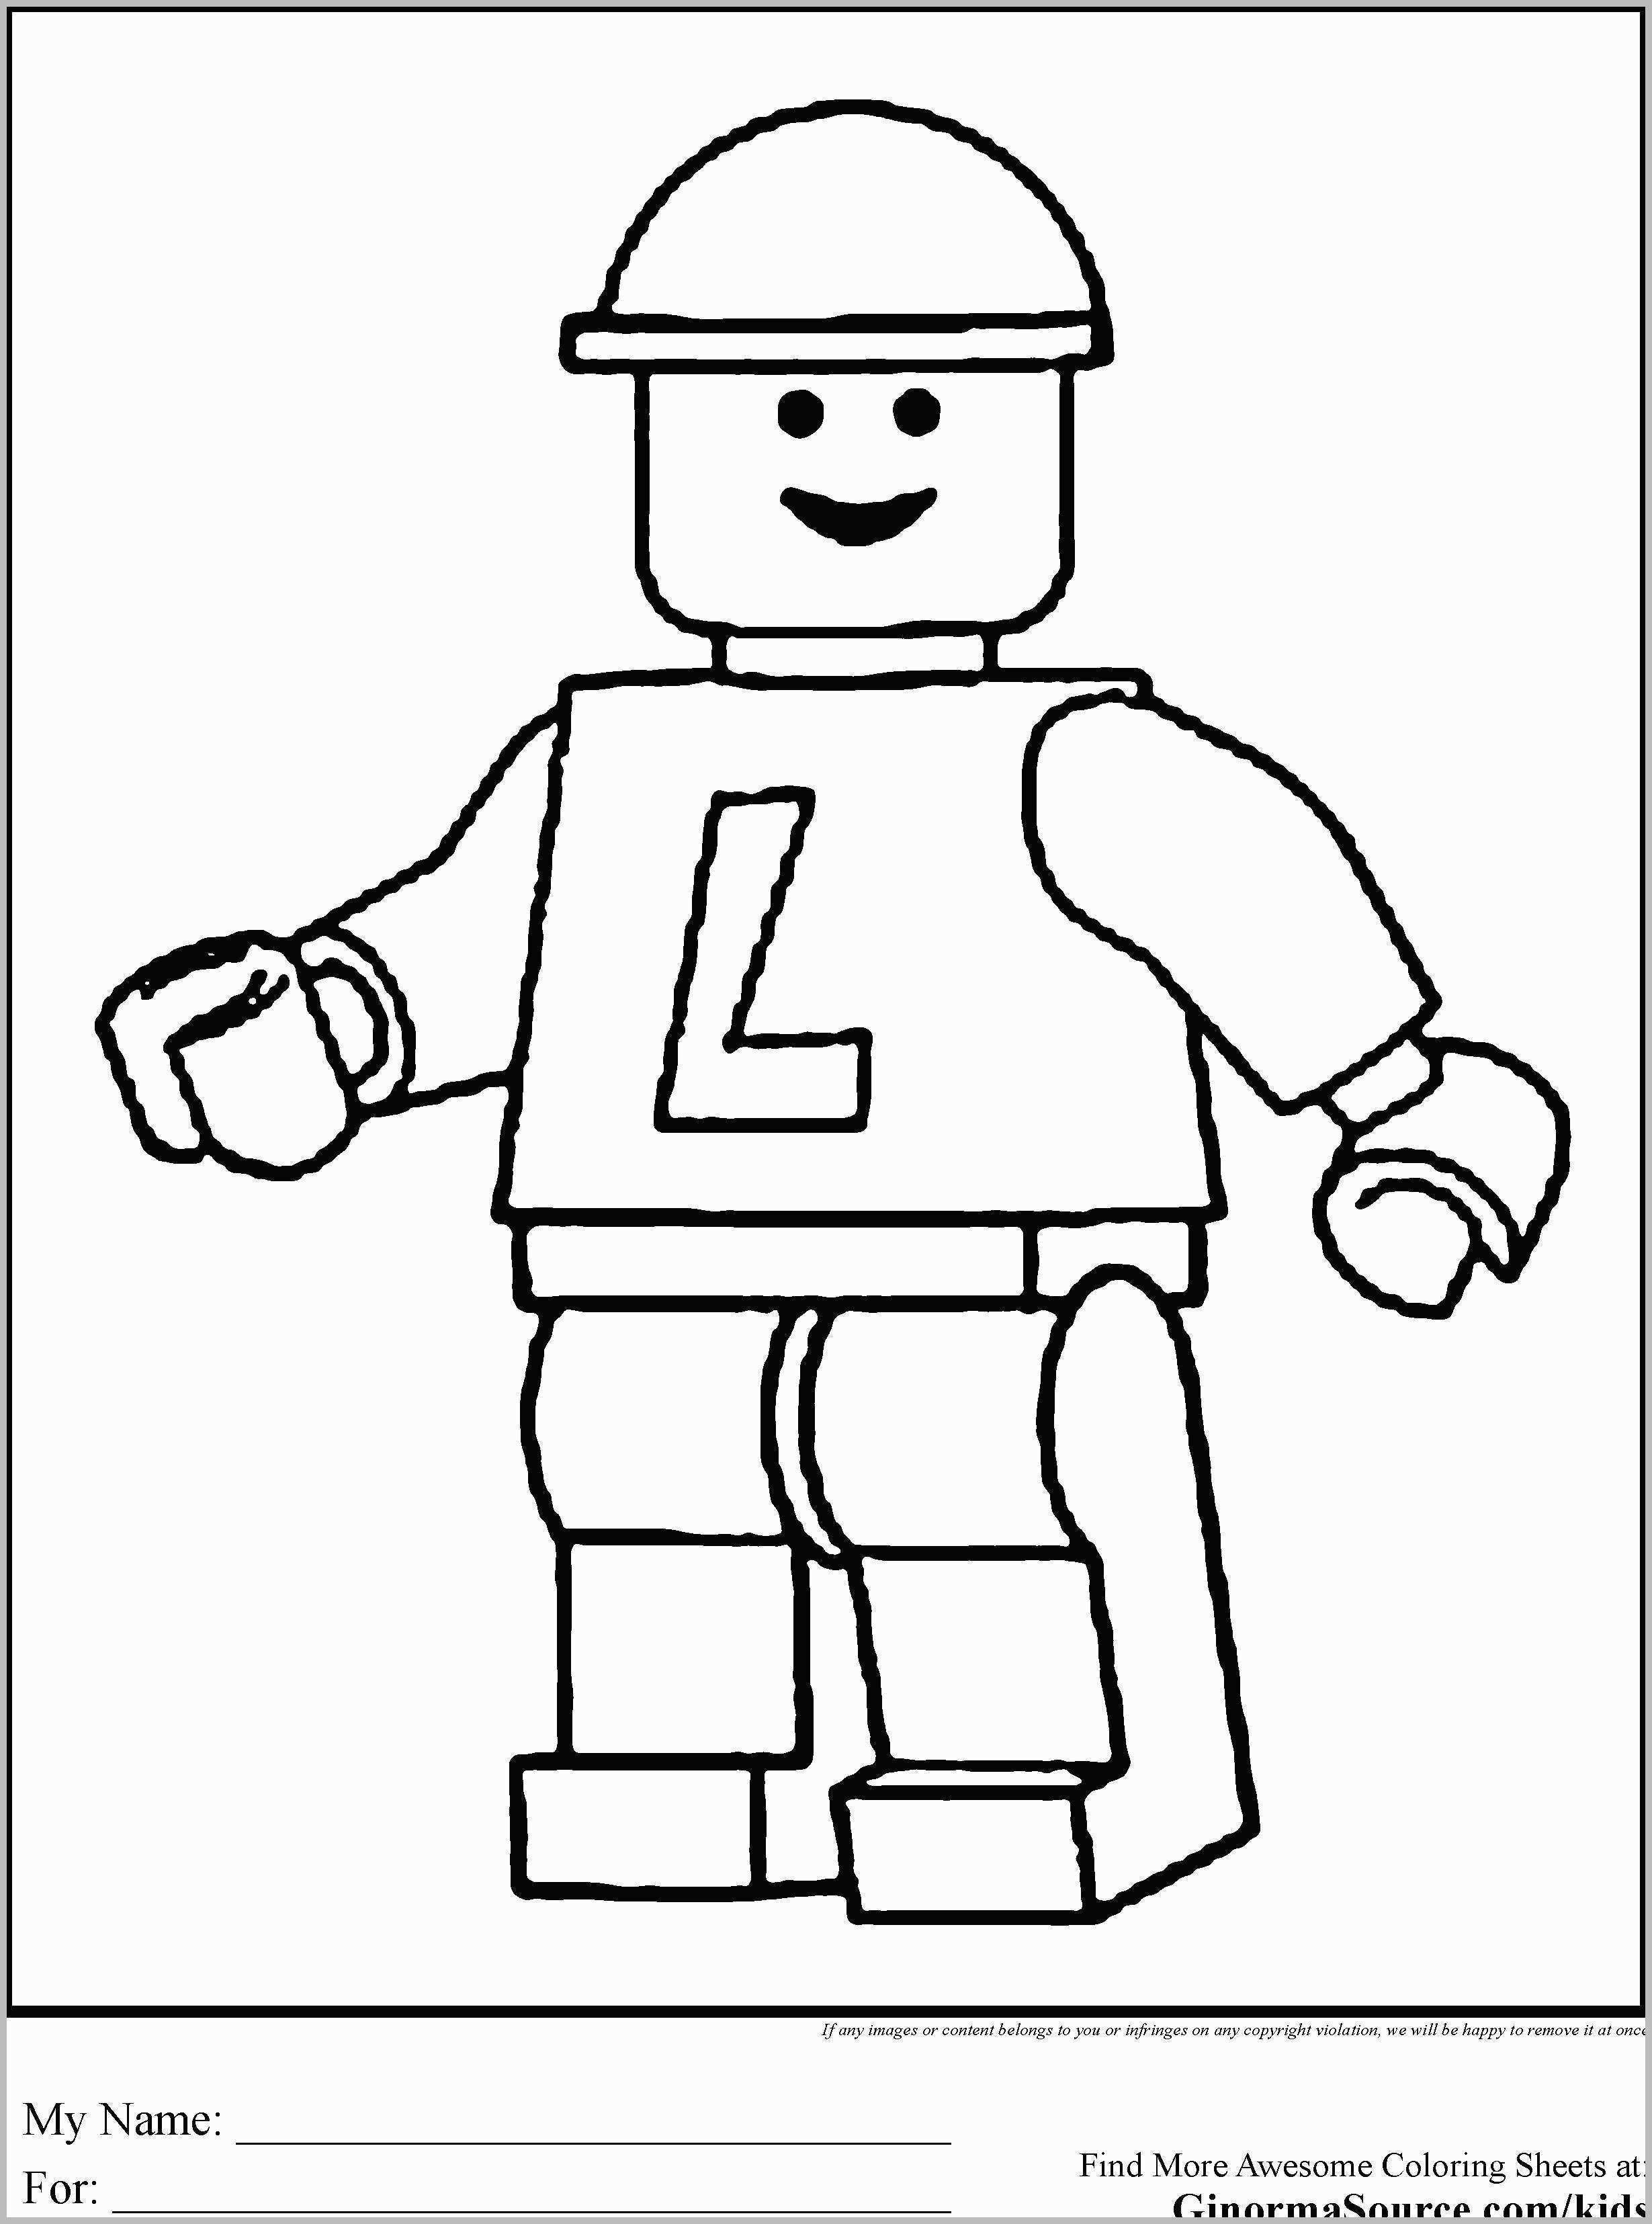 Lego Man Coloring Page Free Http Www Wallpaperartdesignhd Us Lego Man Coloring Page Free 48682 Lego Coloring Pages Lego Coloring Lego Coloring Sheet